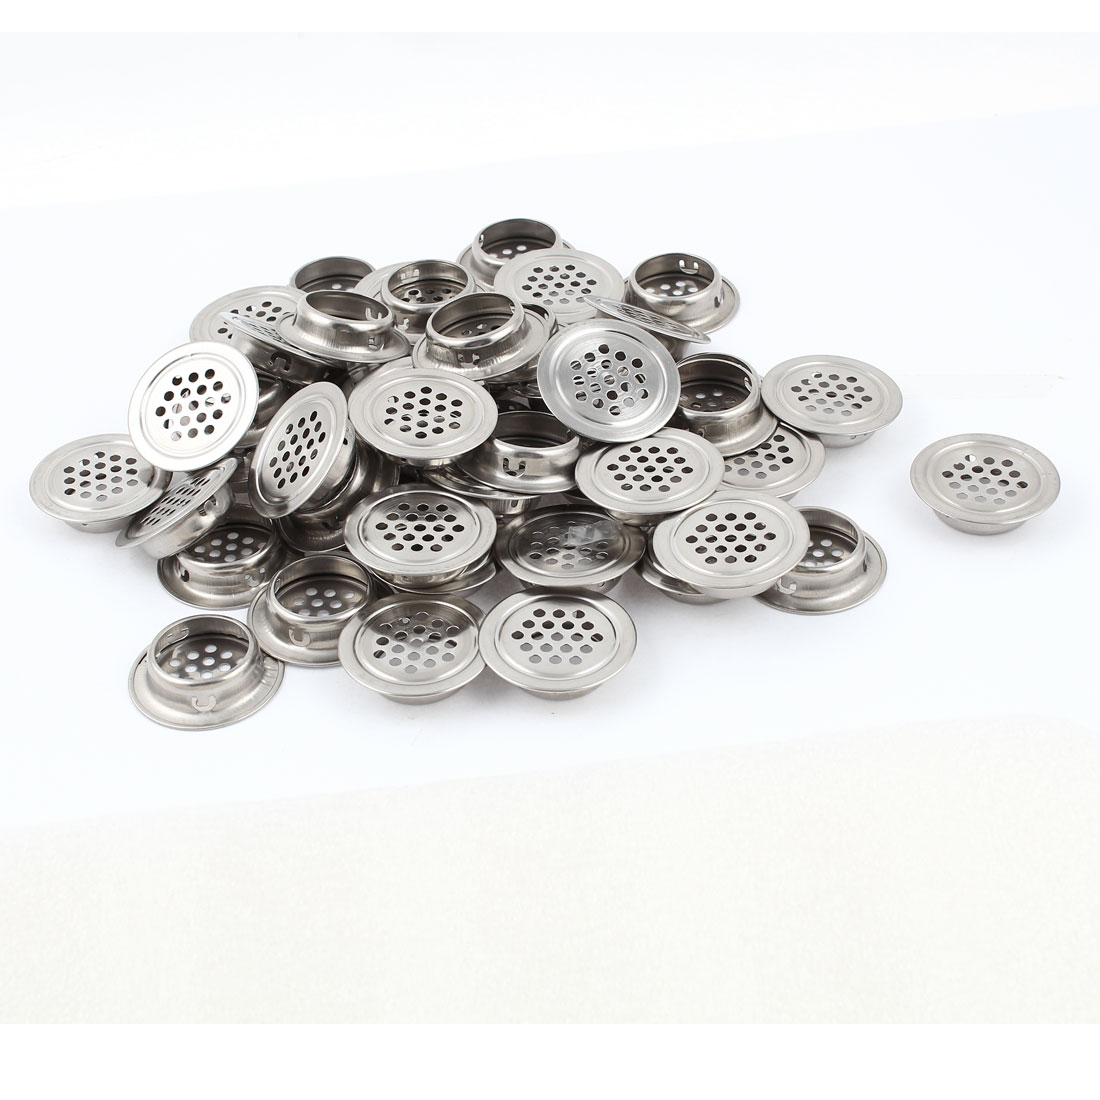 50 Pcs Silver Tone 3mm Round Mesh Hole Air Vents Louvers 30mm Bottom Dia